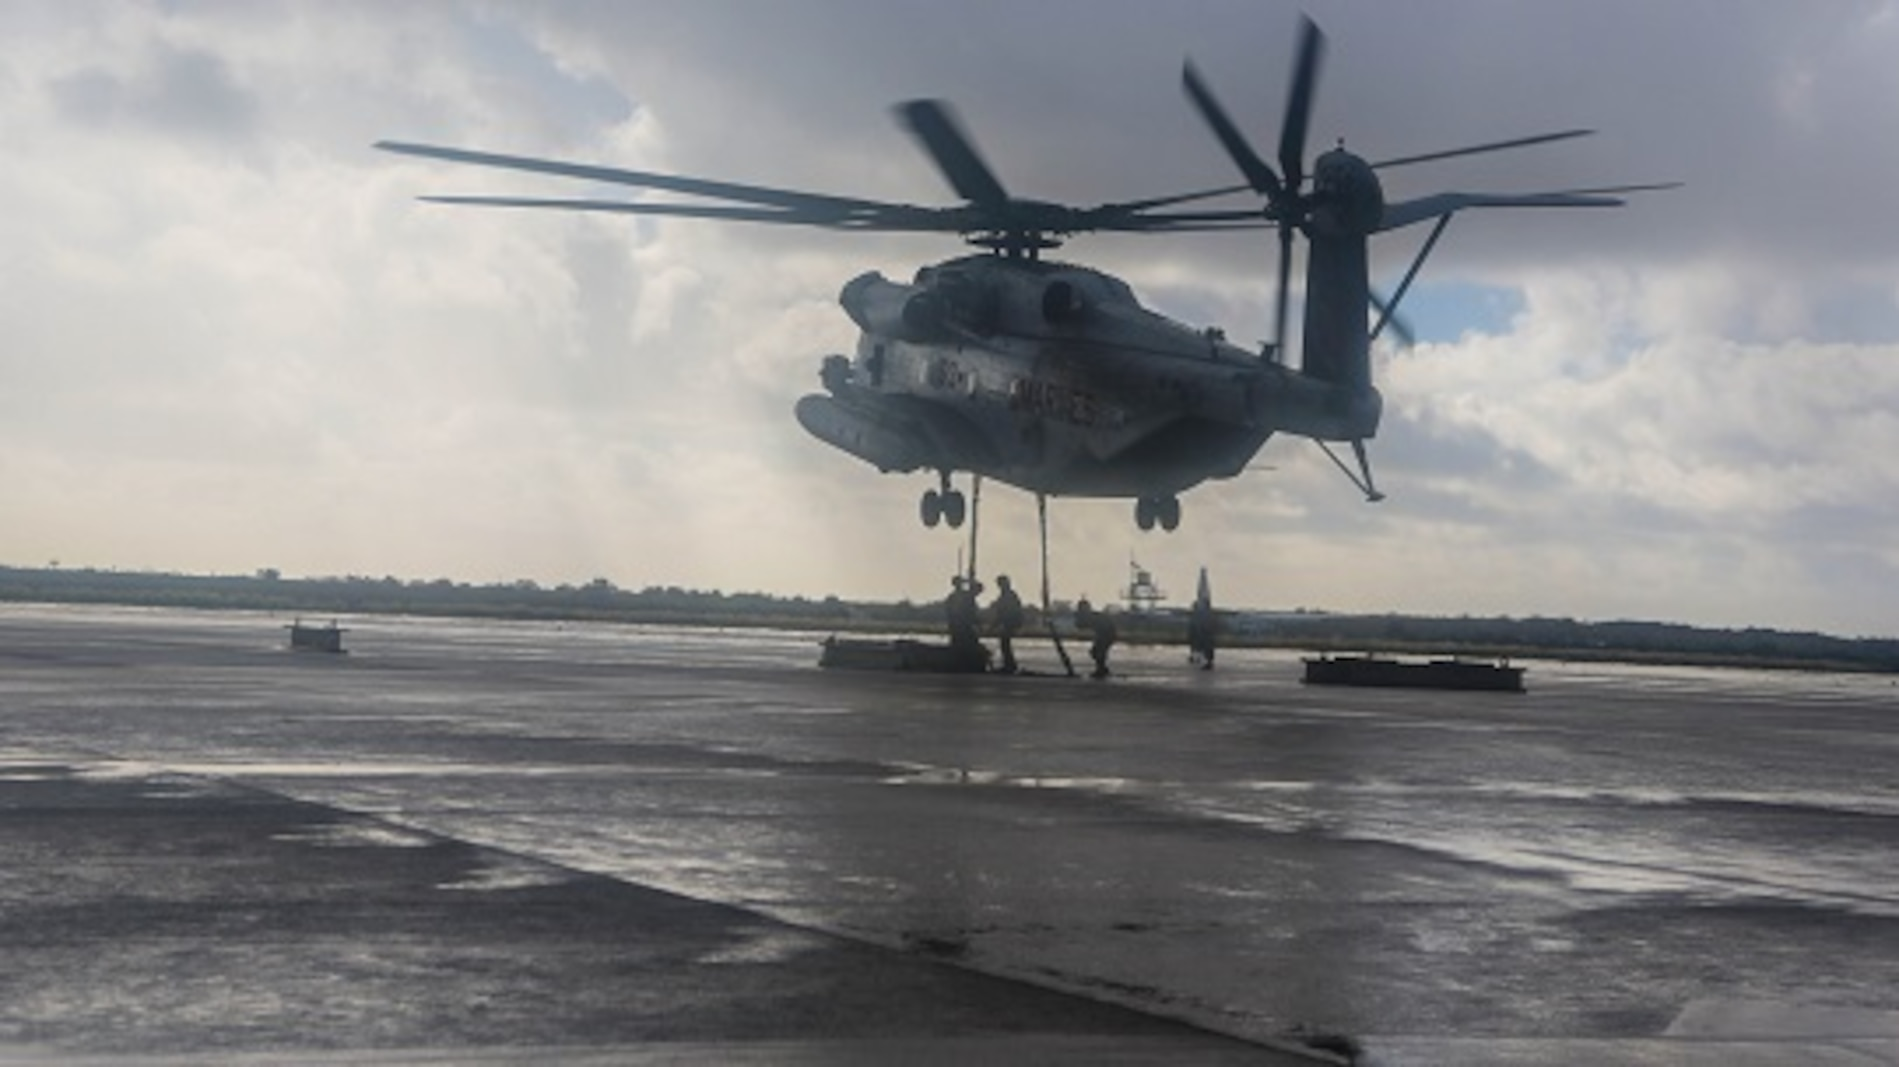 A CH-53E from Marine Heavy Helicopter Squadron (HMH) 465 hovers above as Marines with Combat Logistic Battalion (CLB) 11 rush in to attach 6,200-pound weight to the helicopter aboard Marine Corps Air Station Miramar, Calif., Jan. 7. Marines with CLB-11 support HMH-465 during daytime external lift training to prepare for future deployments. (U.S. Marine Corps photo by Lance Cpl. Harley Robinson/Released)